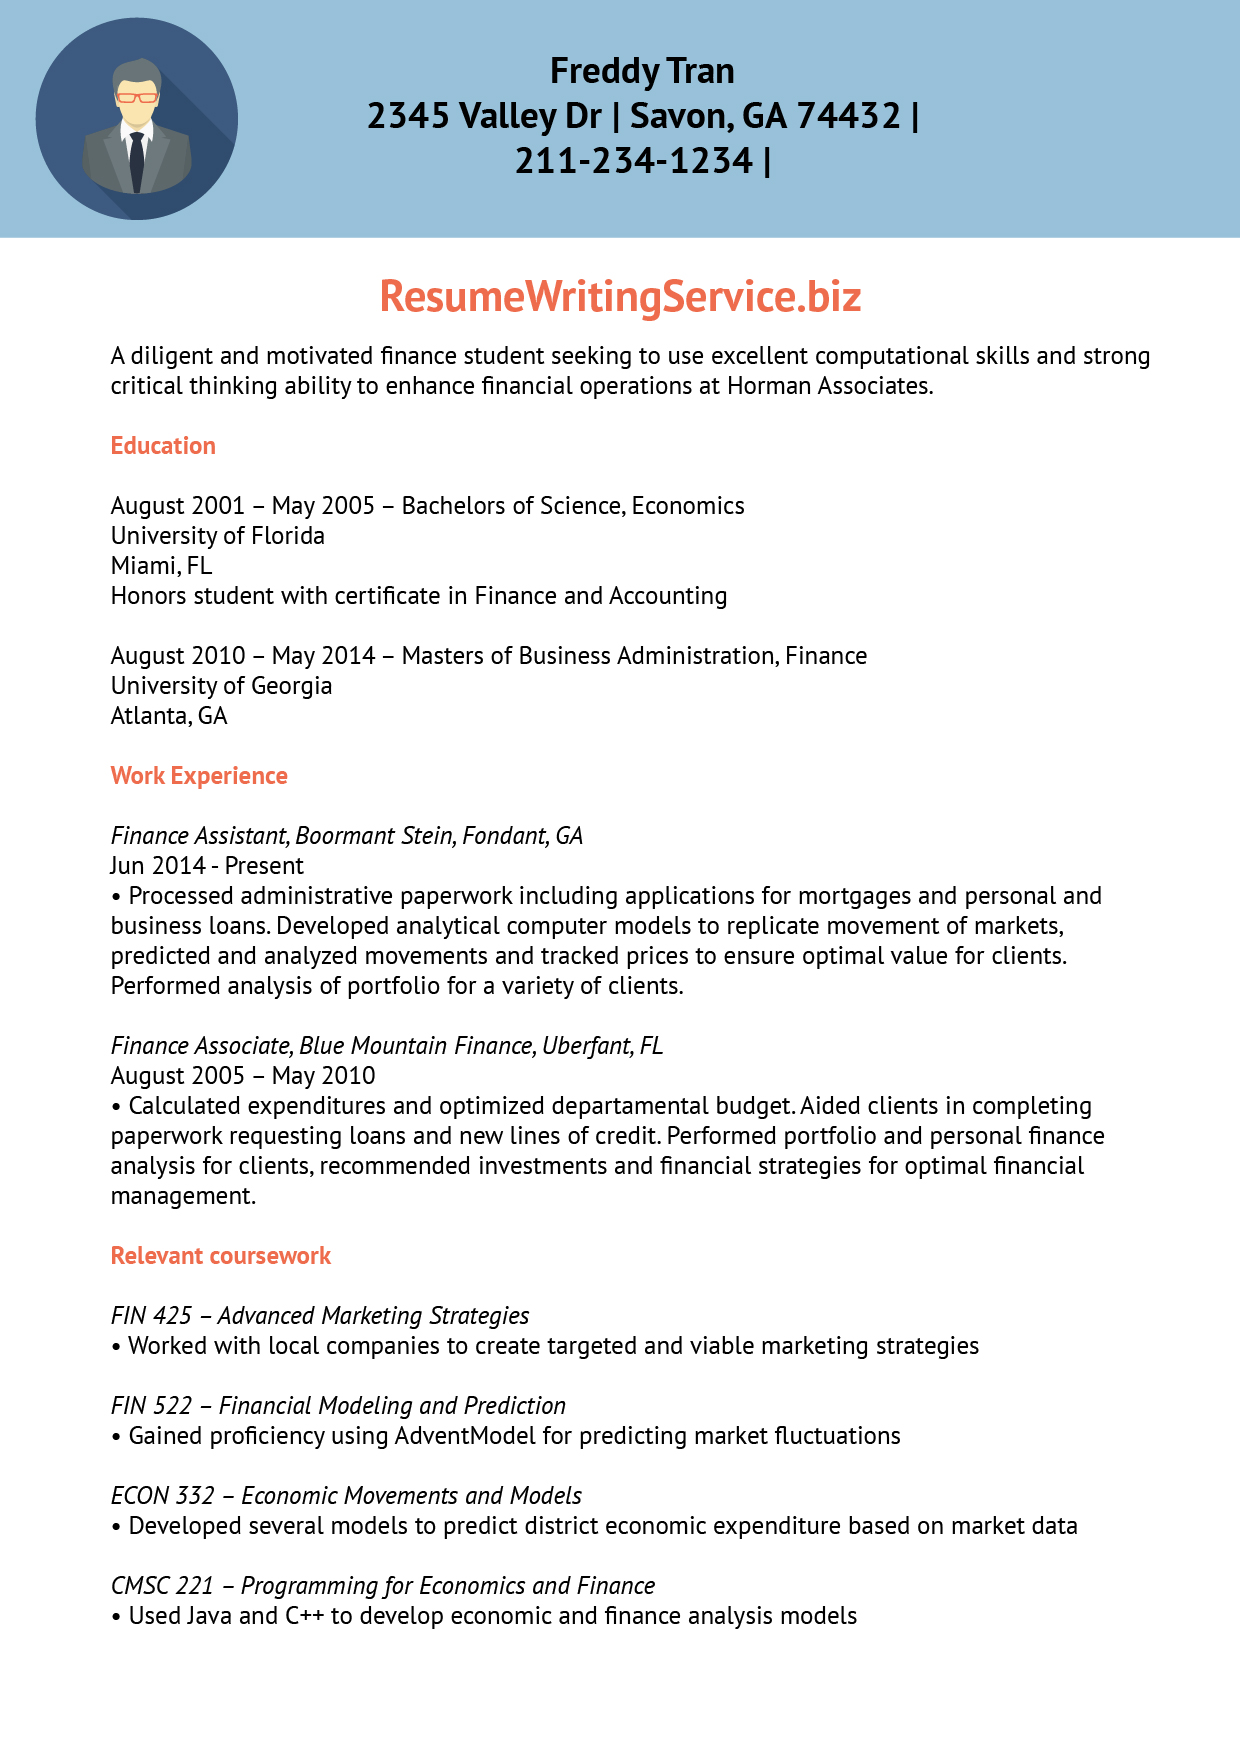 Finance Trainee Resume Sample